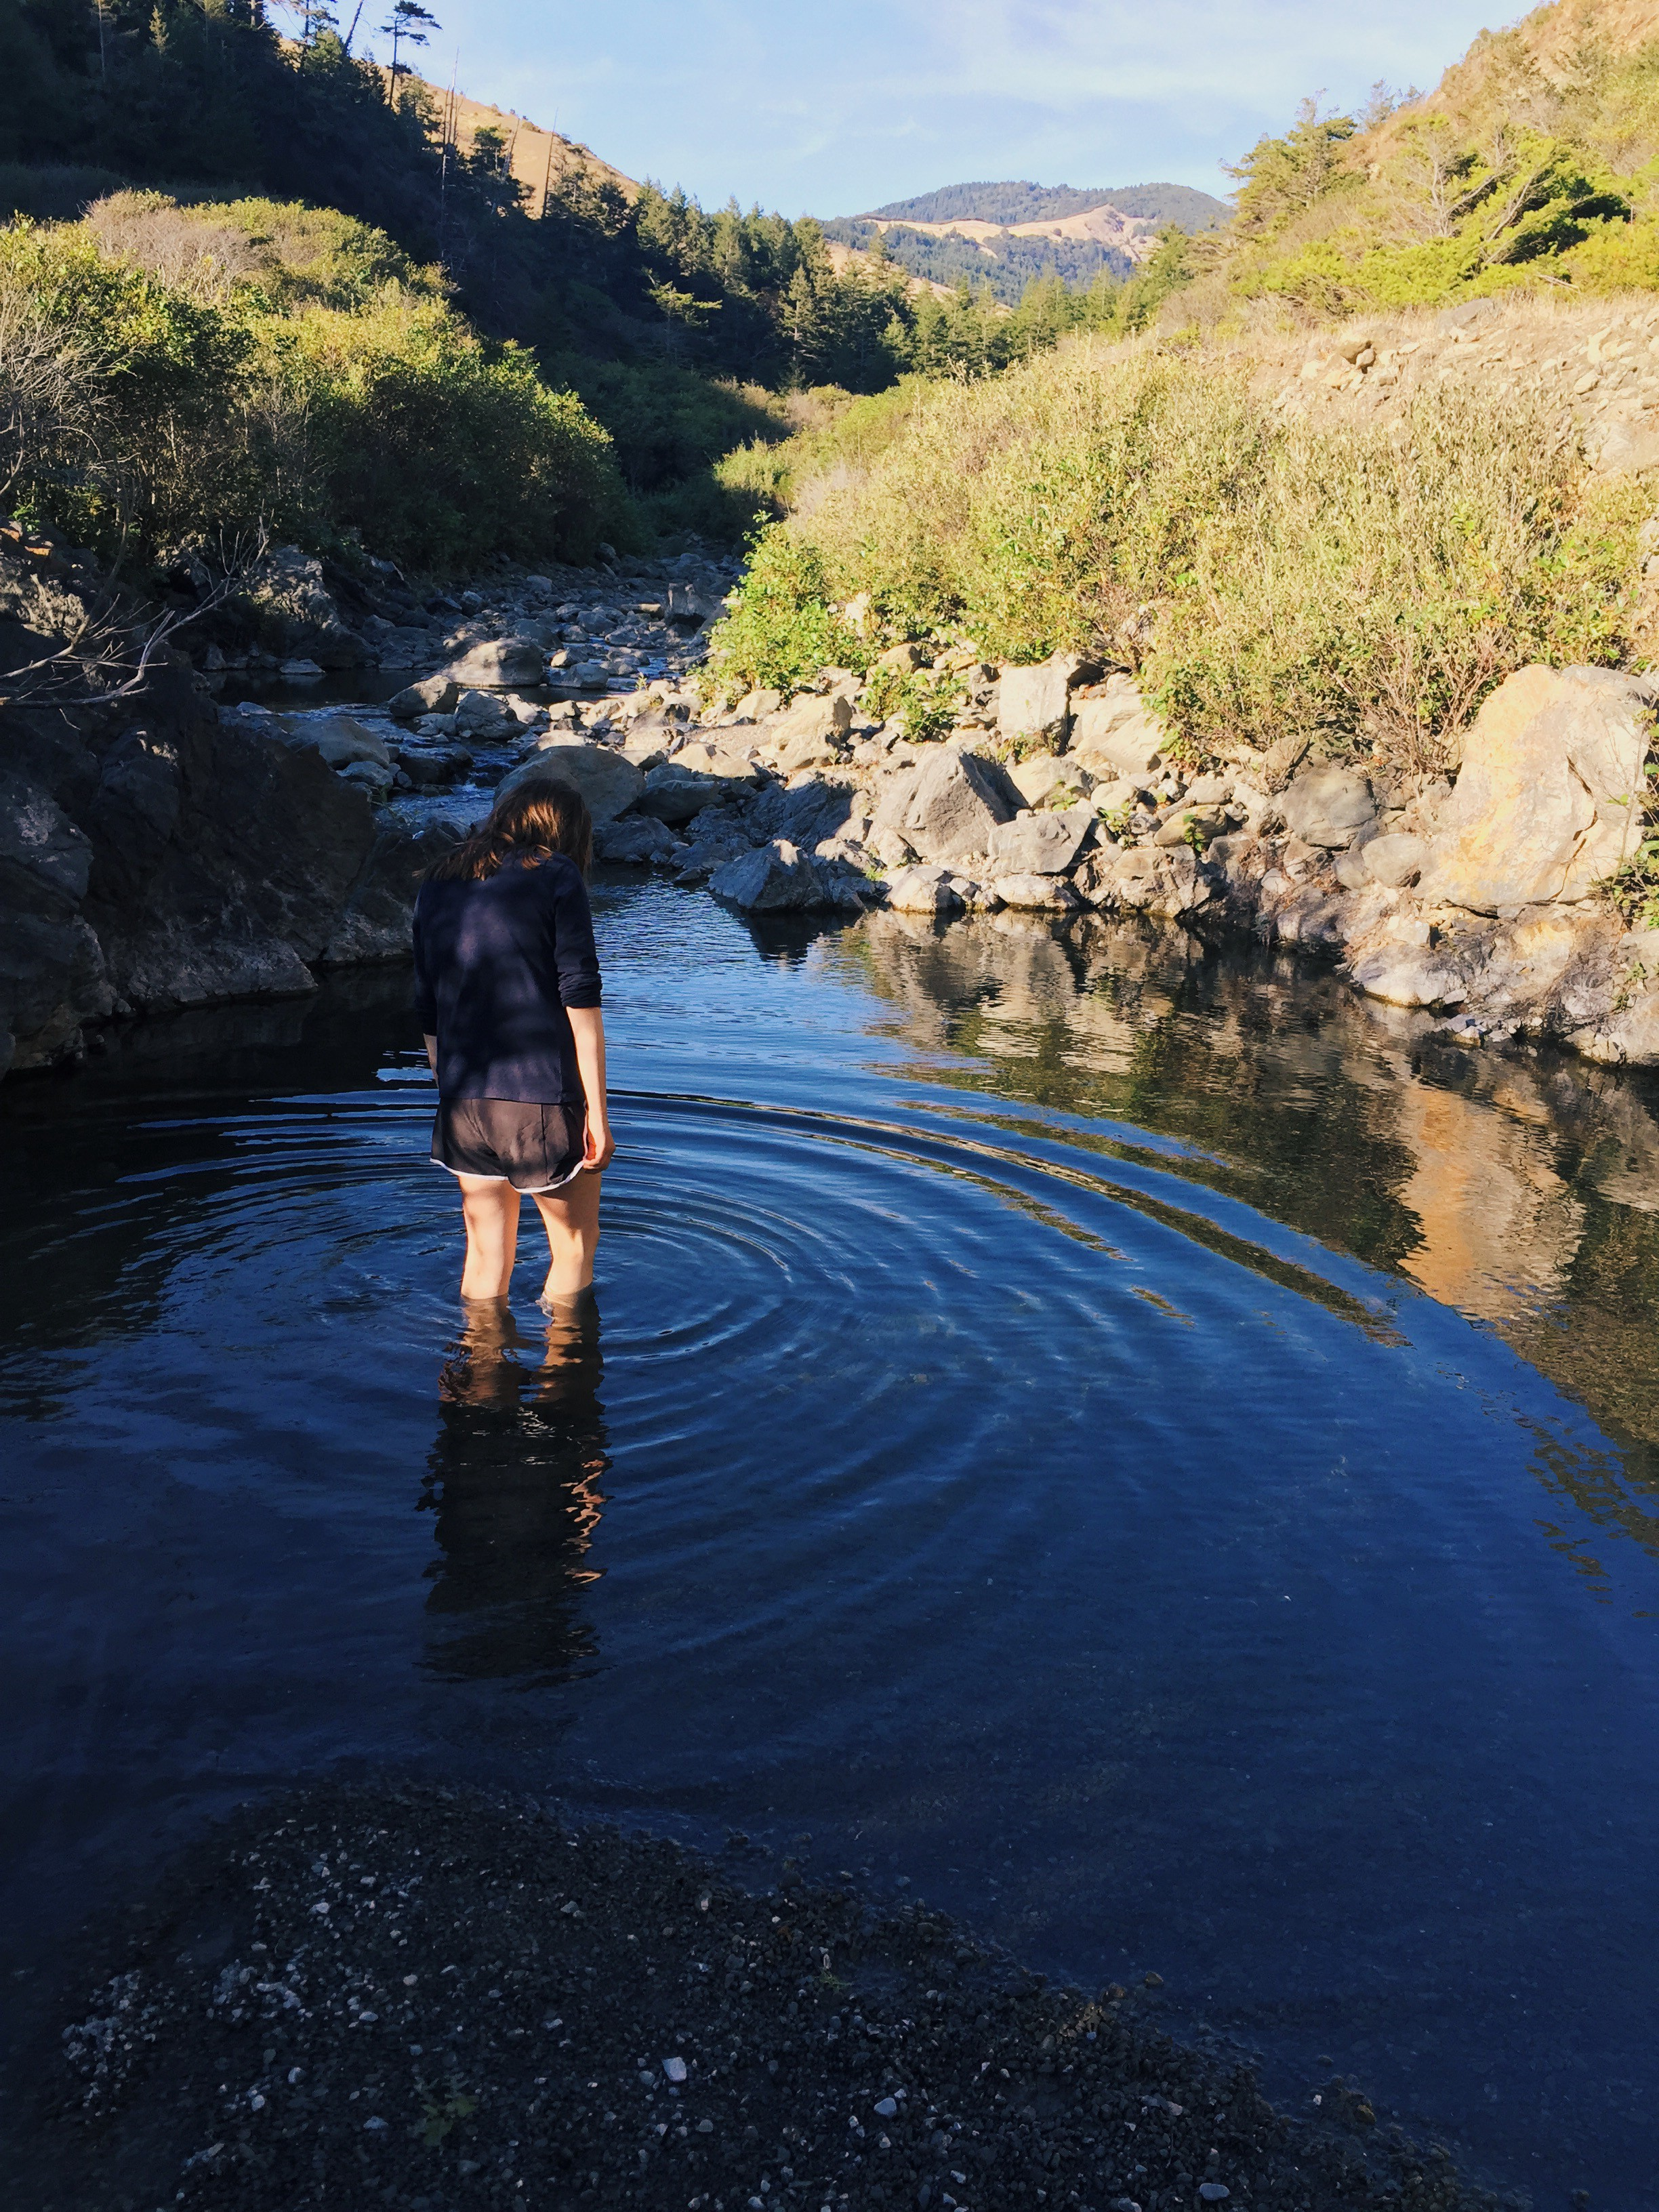 Swimming hole at Coosksie Creek